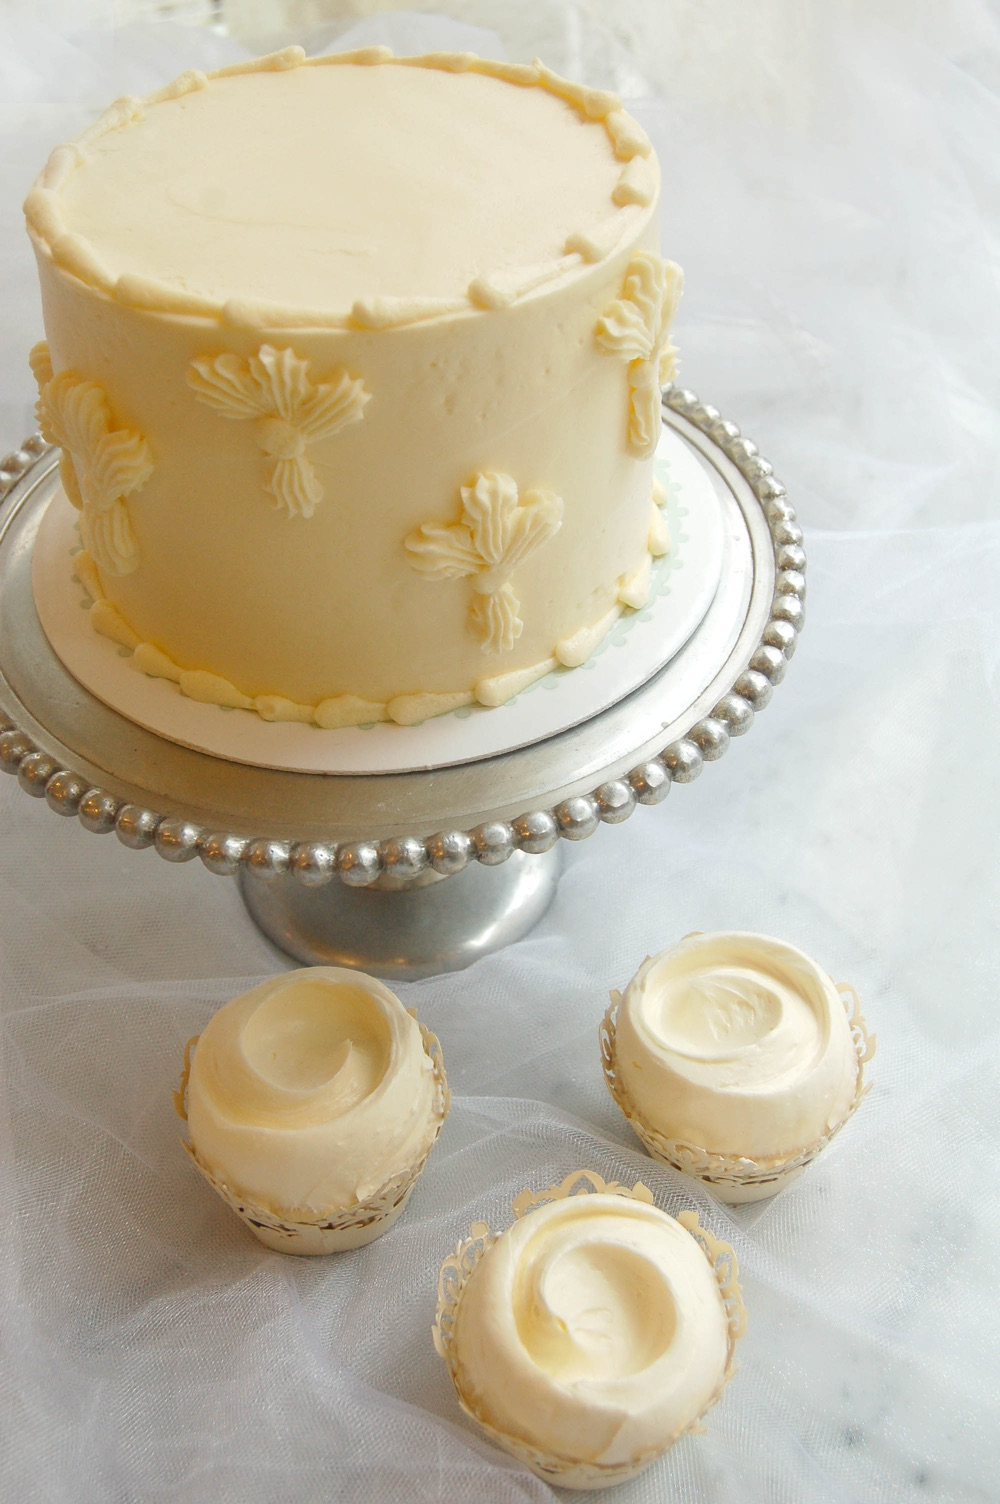 Magnolia Bakery - Elderflower cake